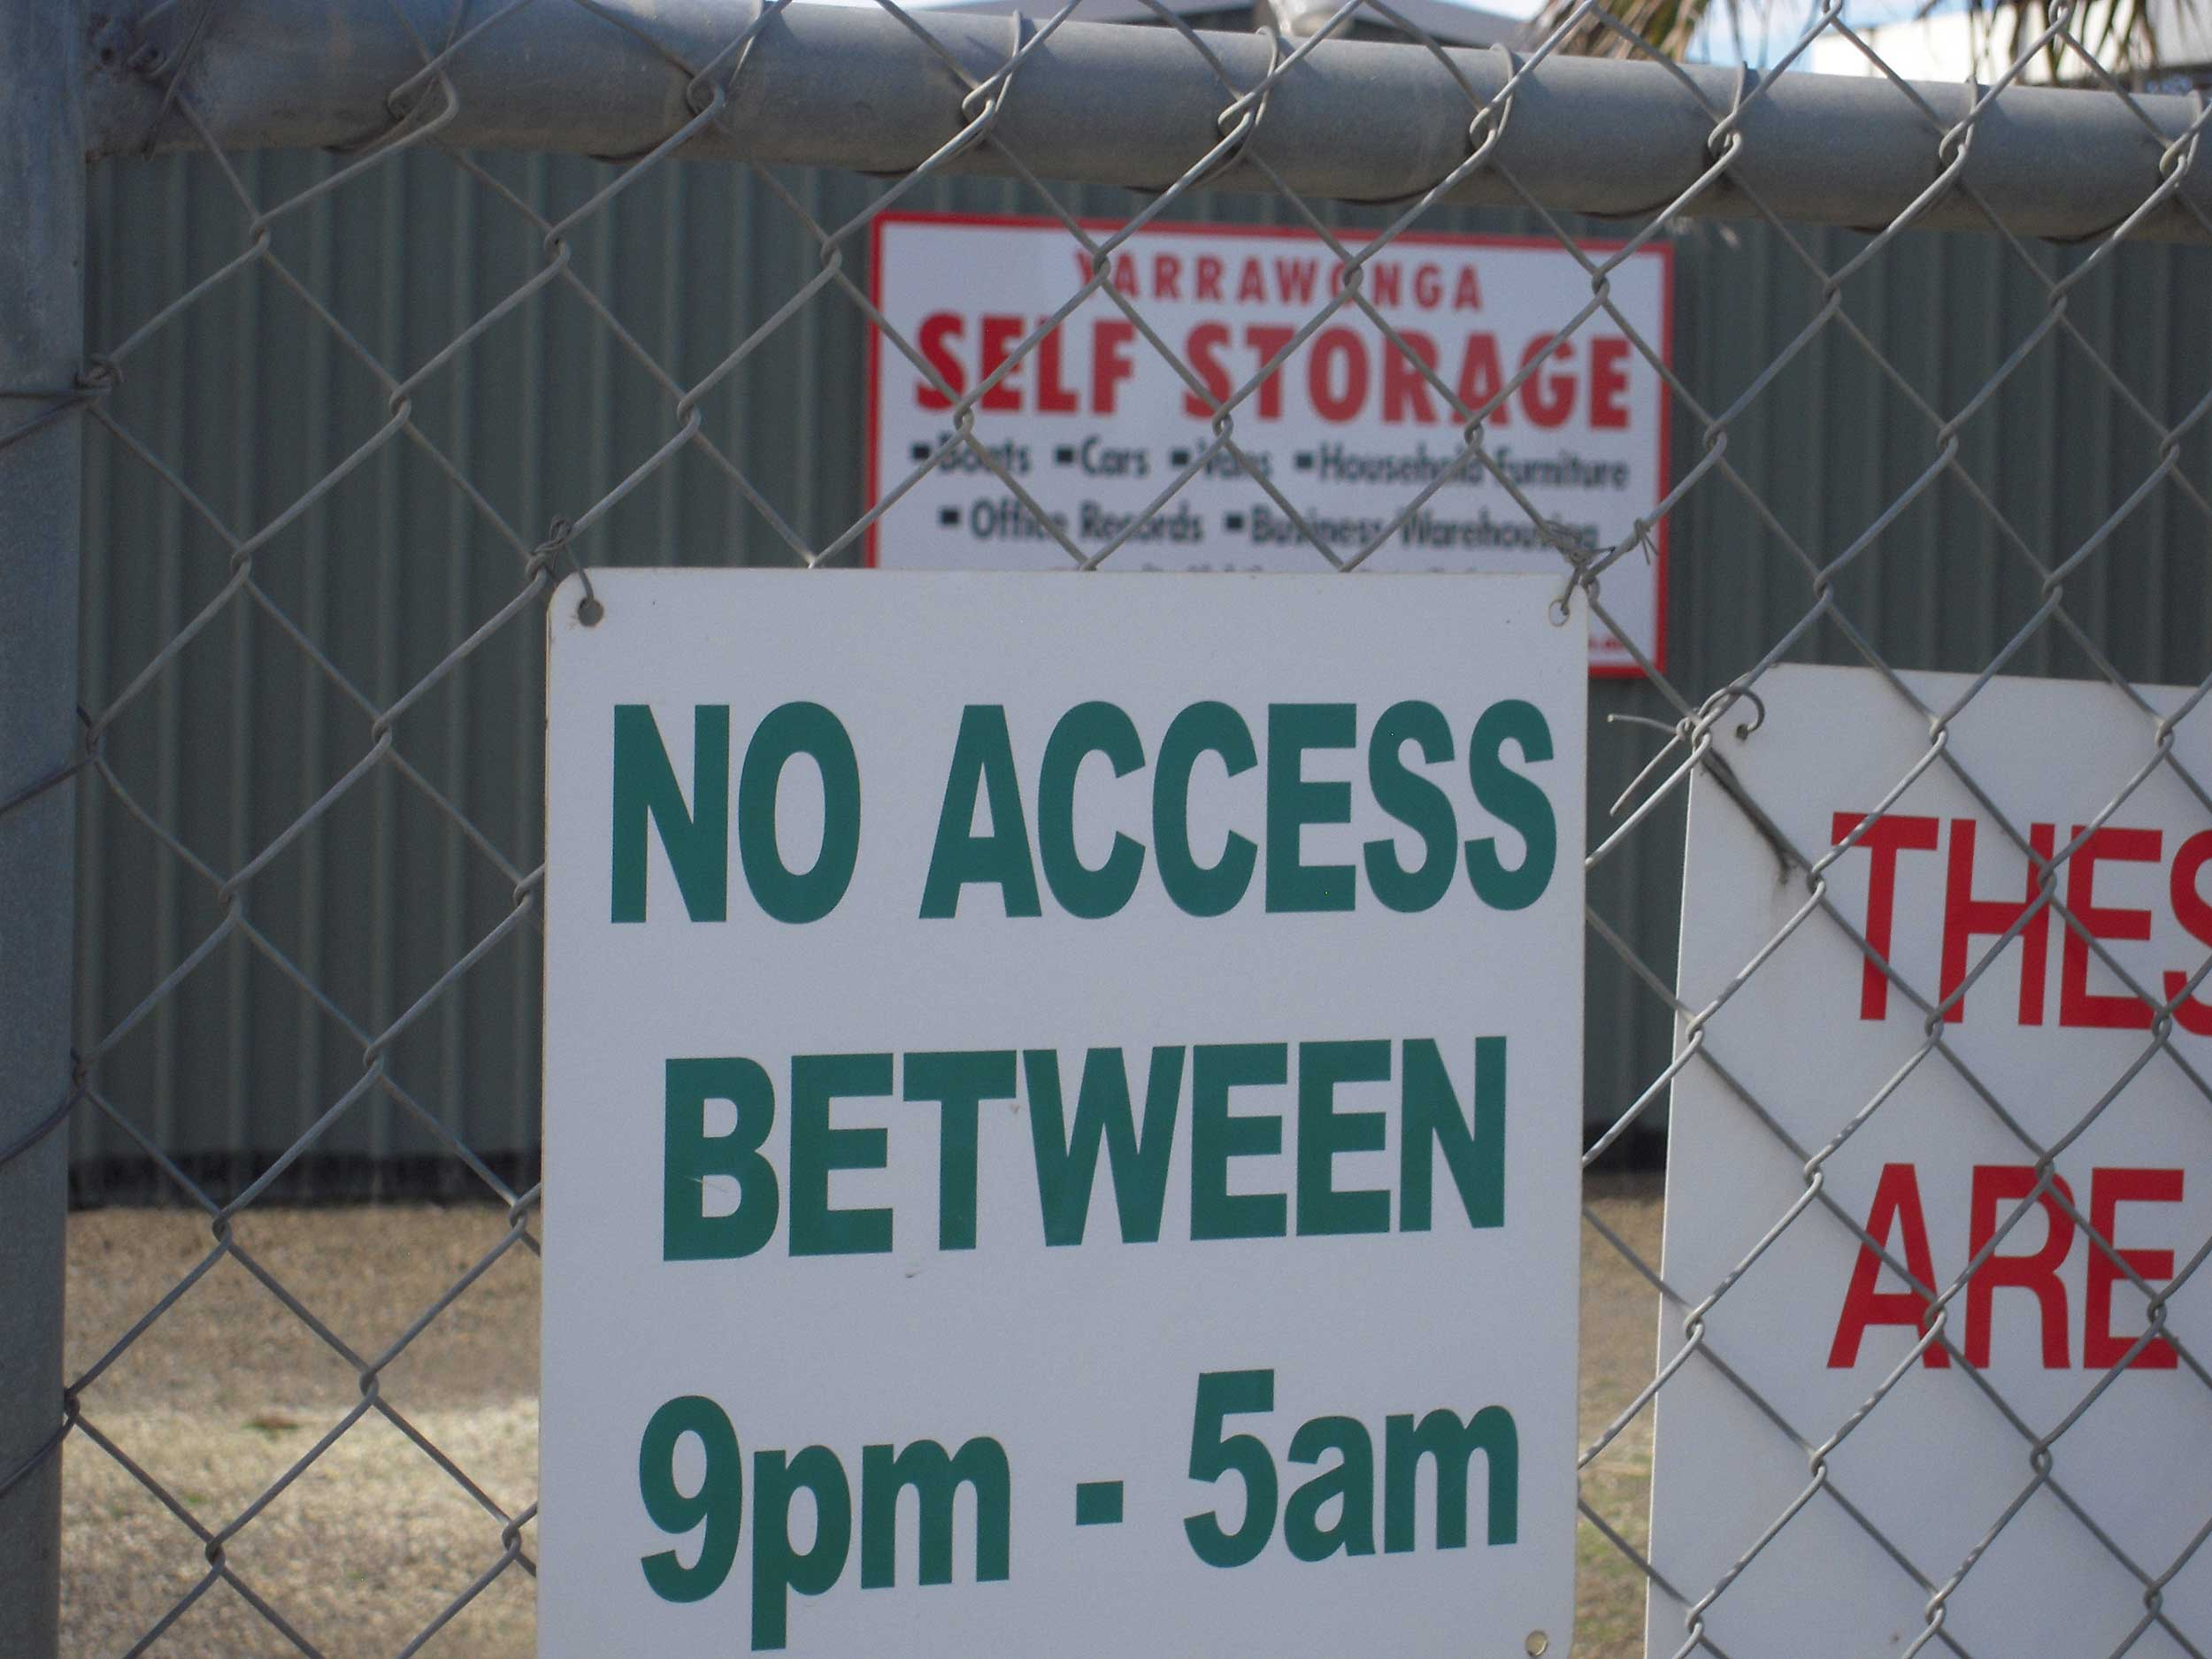 Opening hours of our secure storage units in Yarrawonga